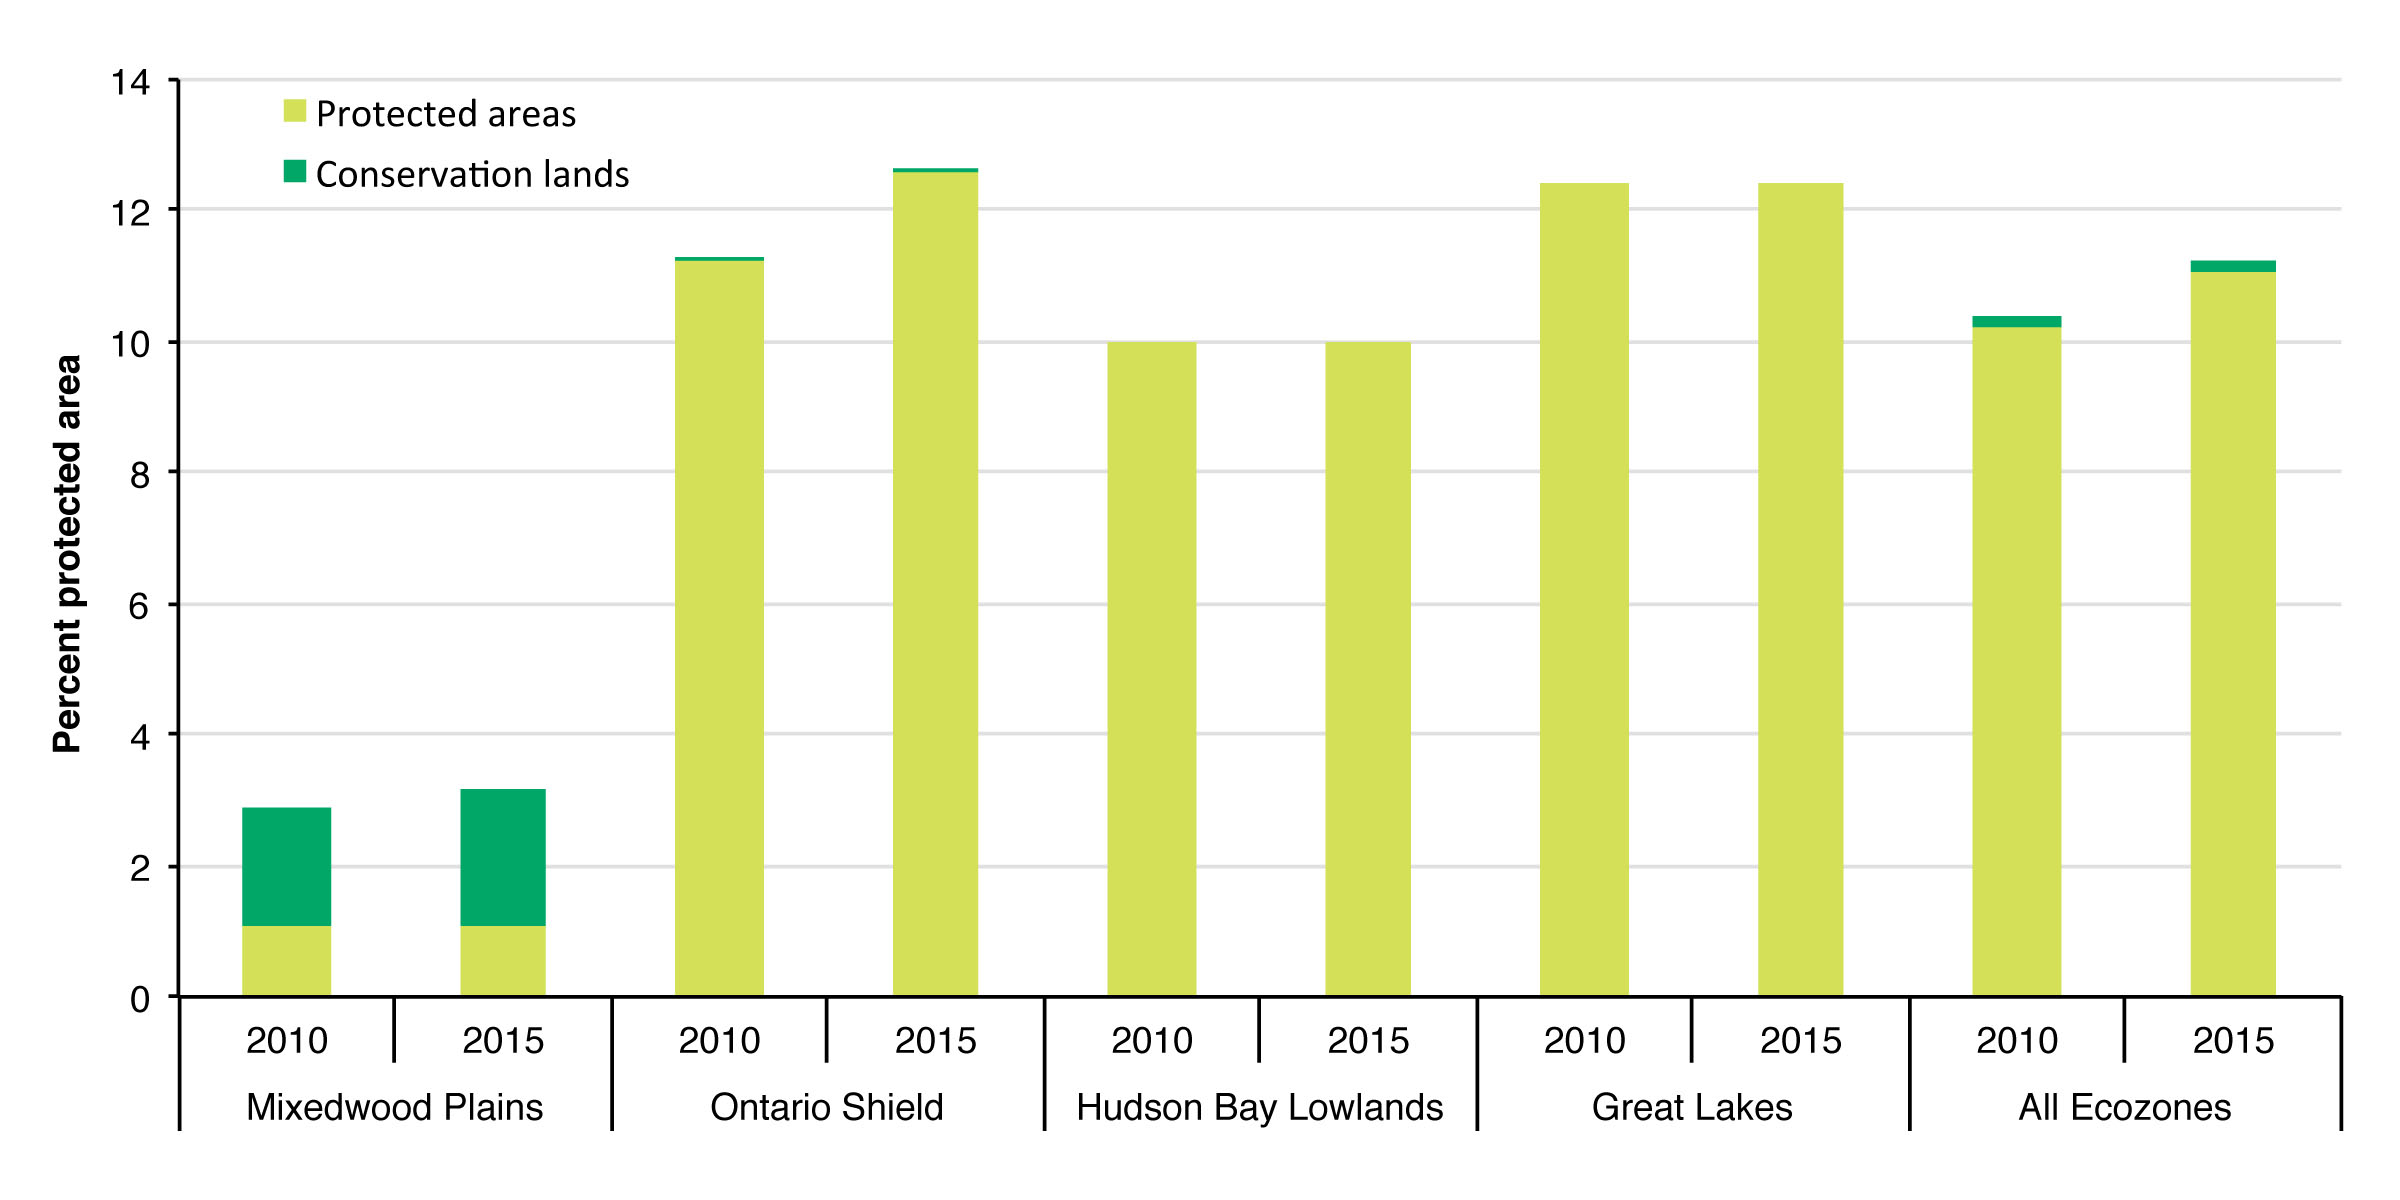 Figure 1. Percentage of Ontario's ecozones that consist of protected areas (including Dedicated Protected Areas in the Far North) and conservation lands.